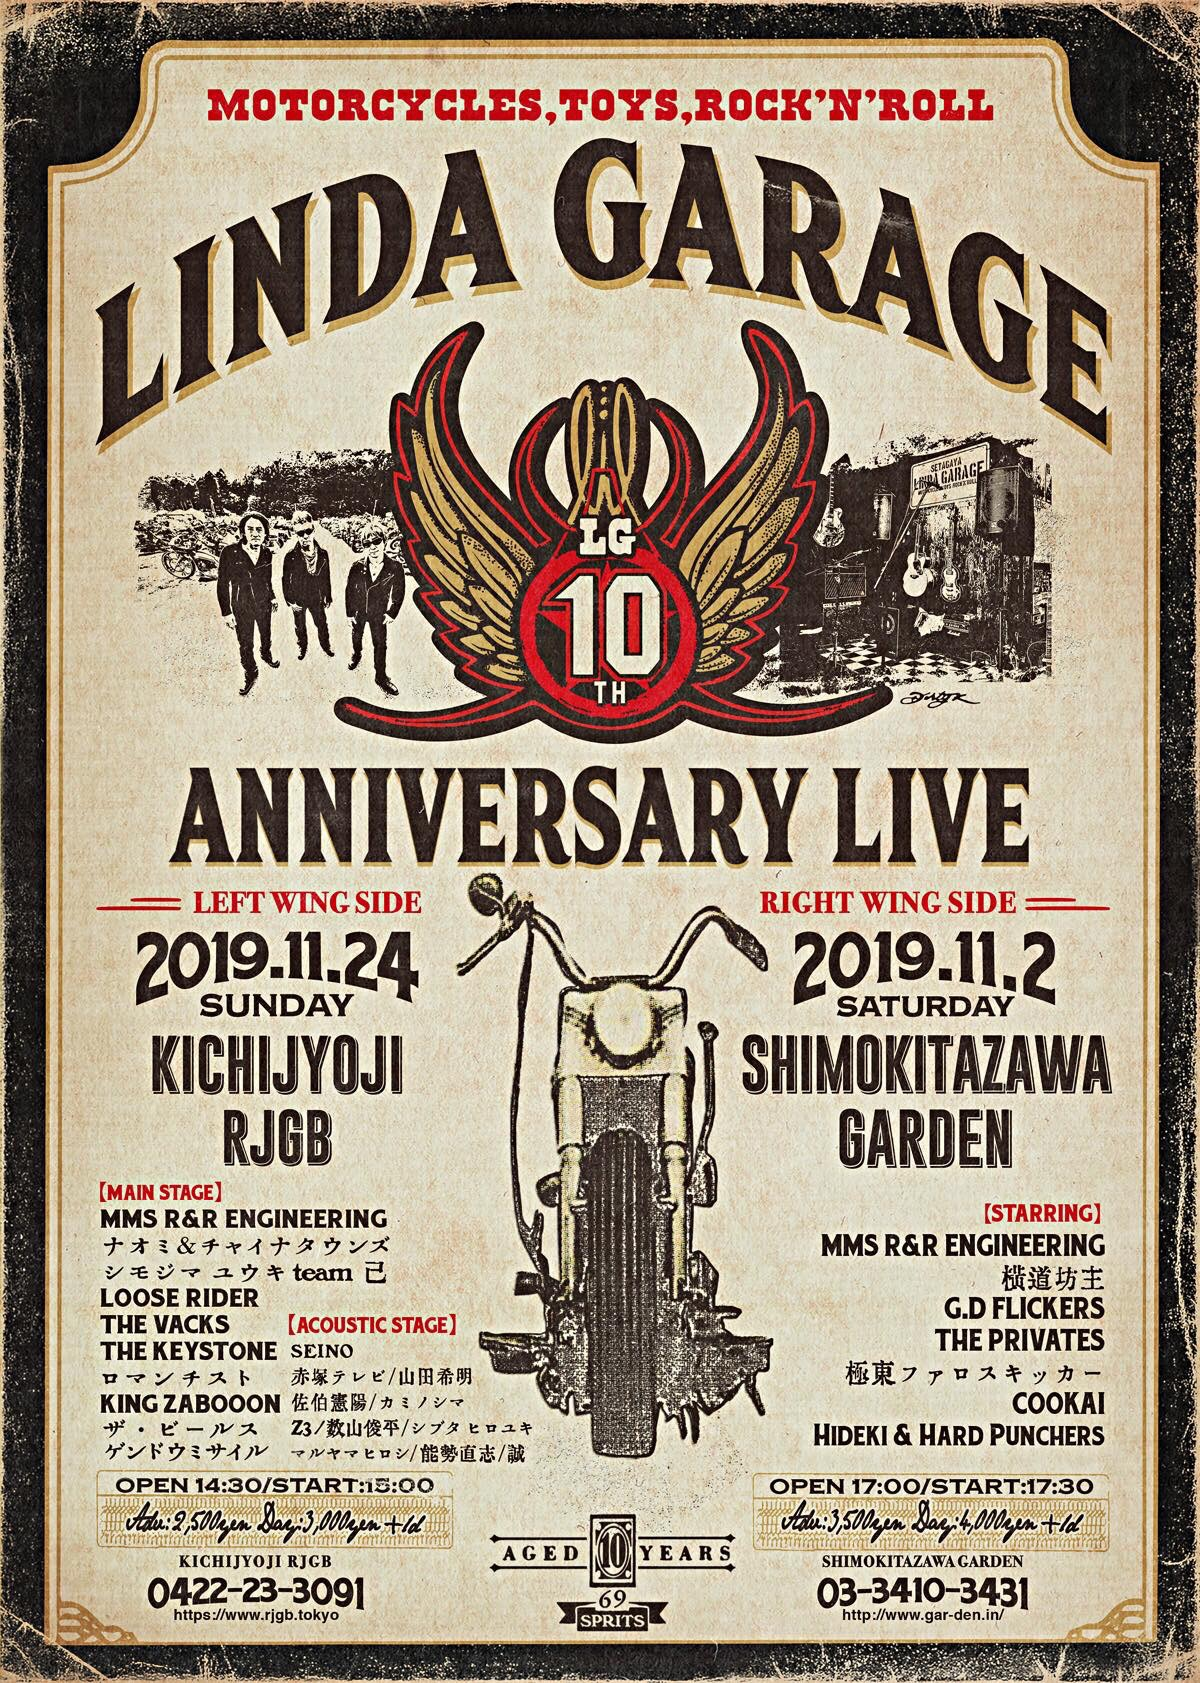 LINDA GARAGE 10th Anniversary Live 〜Right Wing Side〜